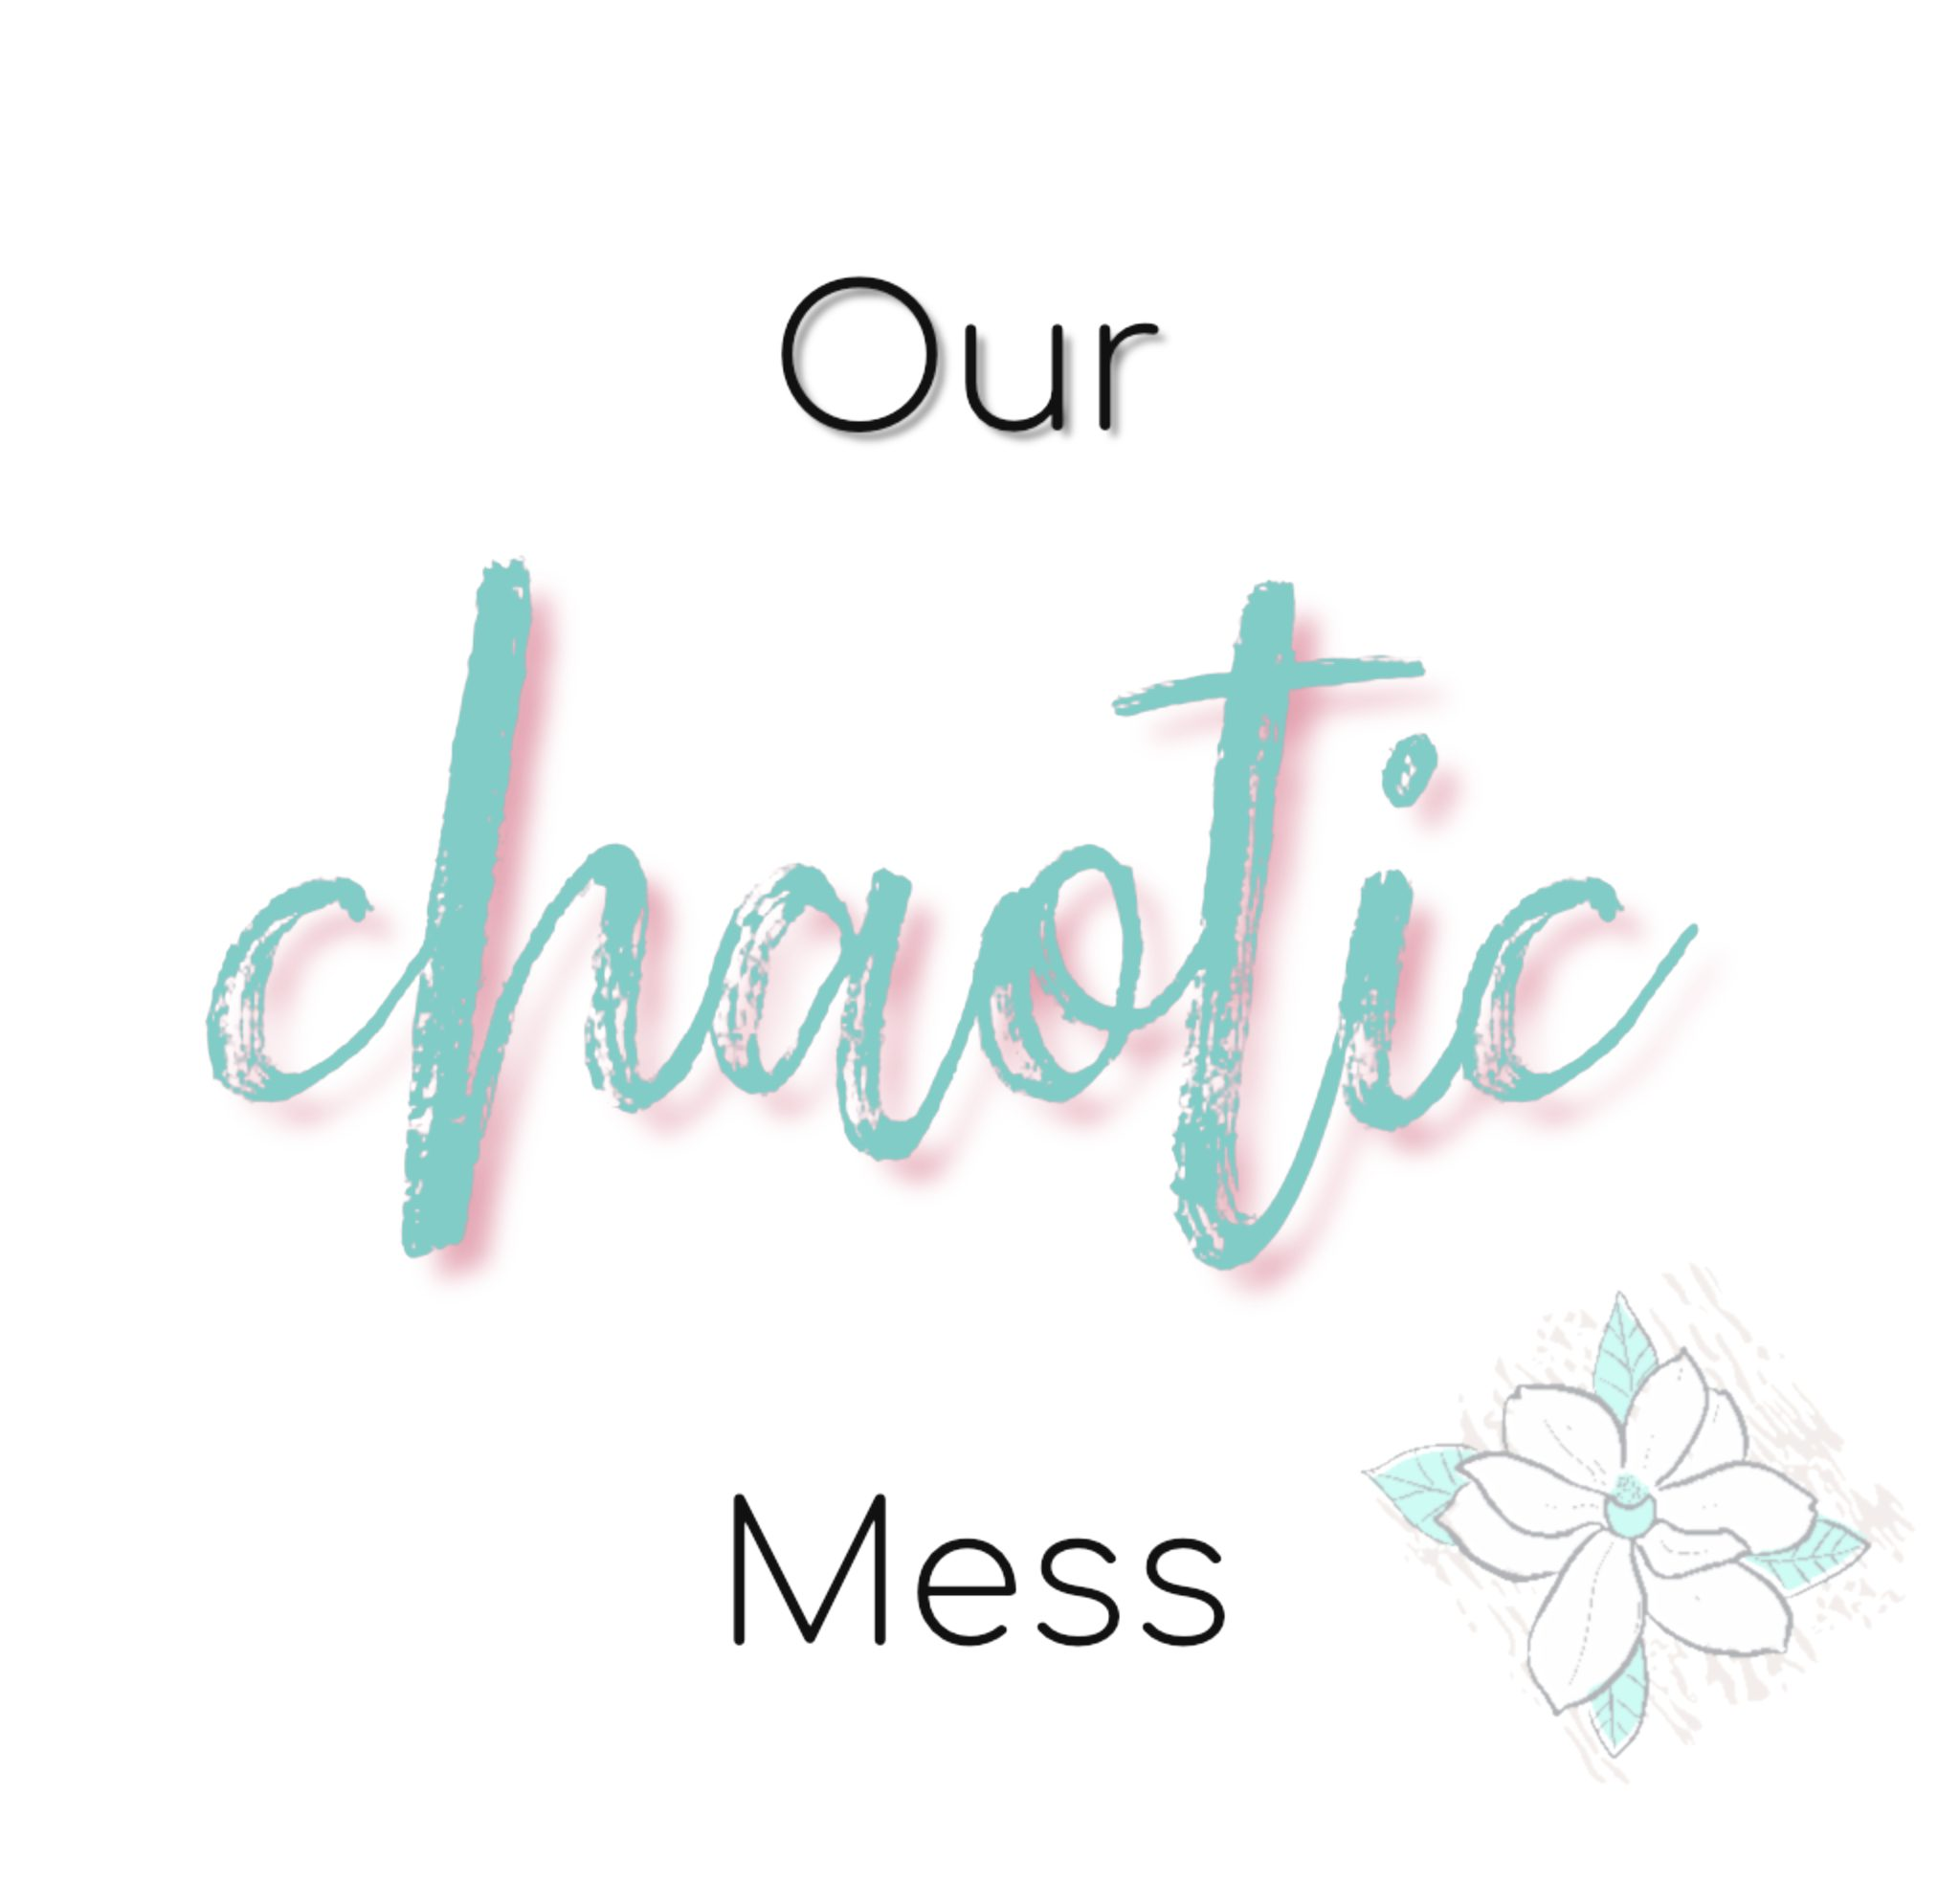 Our Chaotic Mess